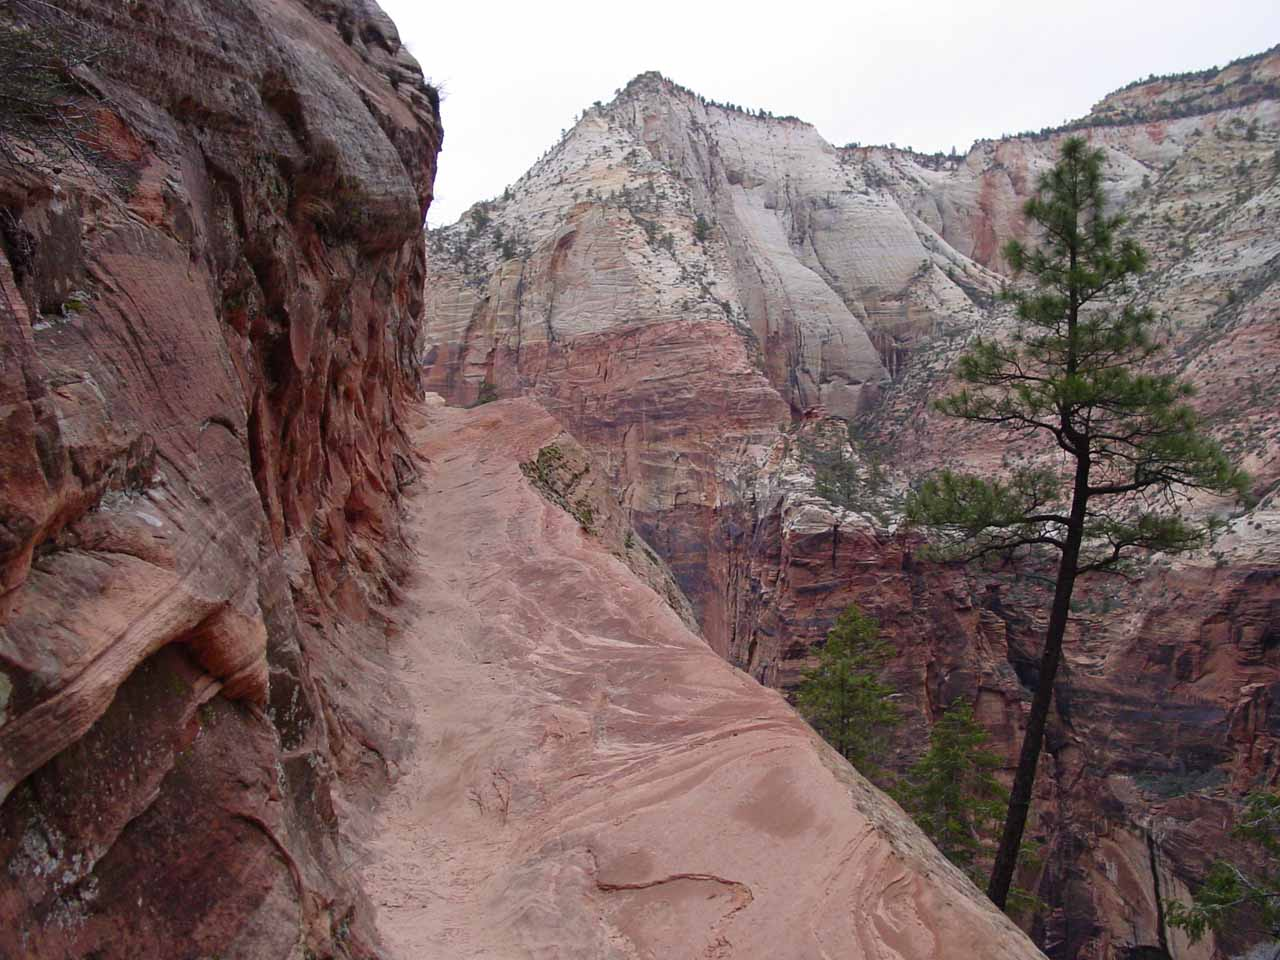 Hiking on the exposed part of the Hidden Canyon Trail near Weeping Rock